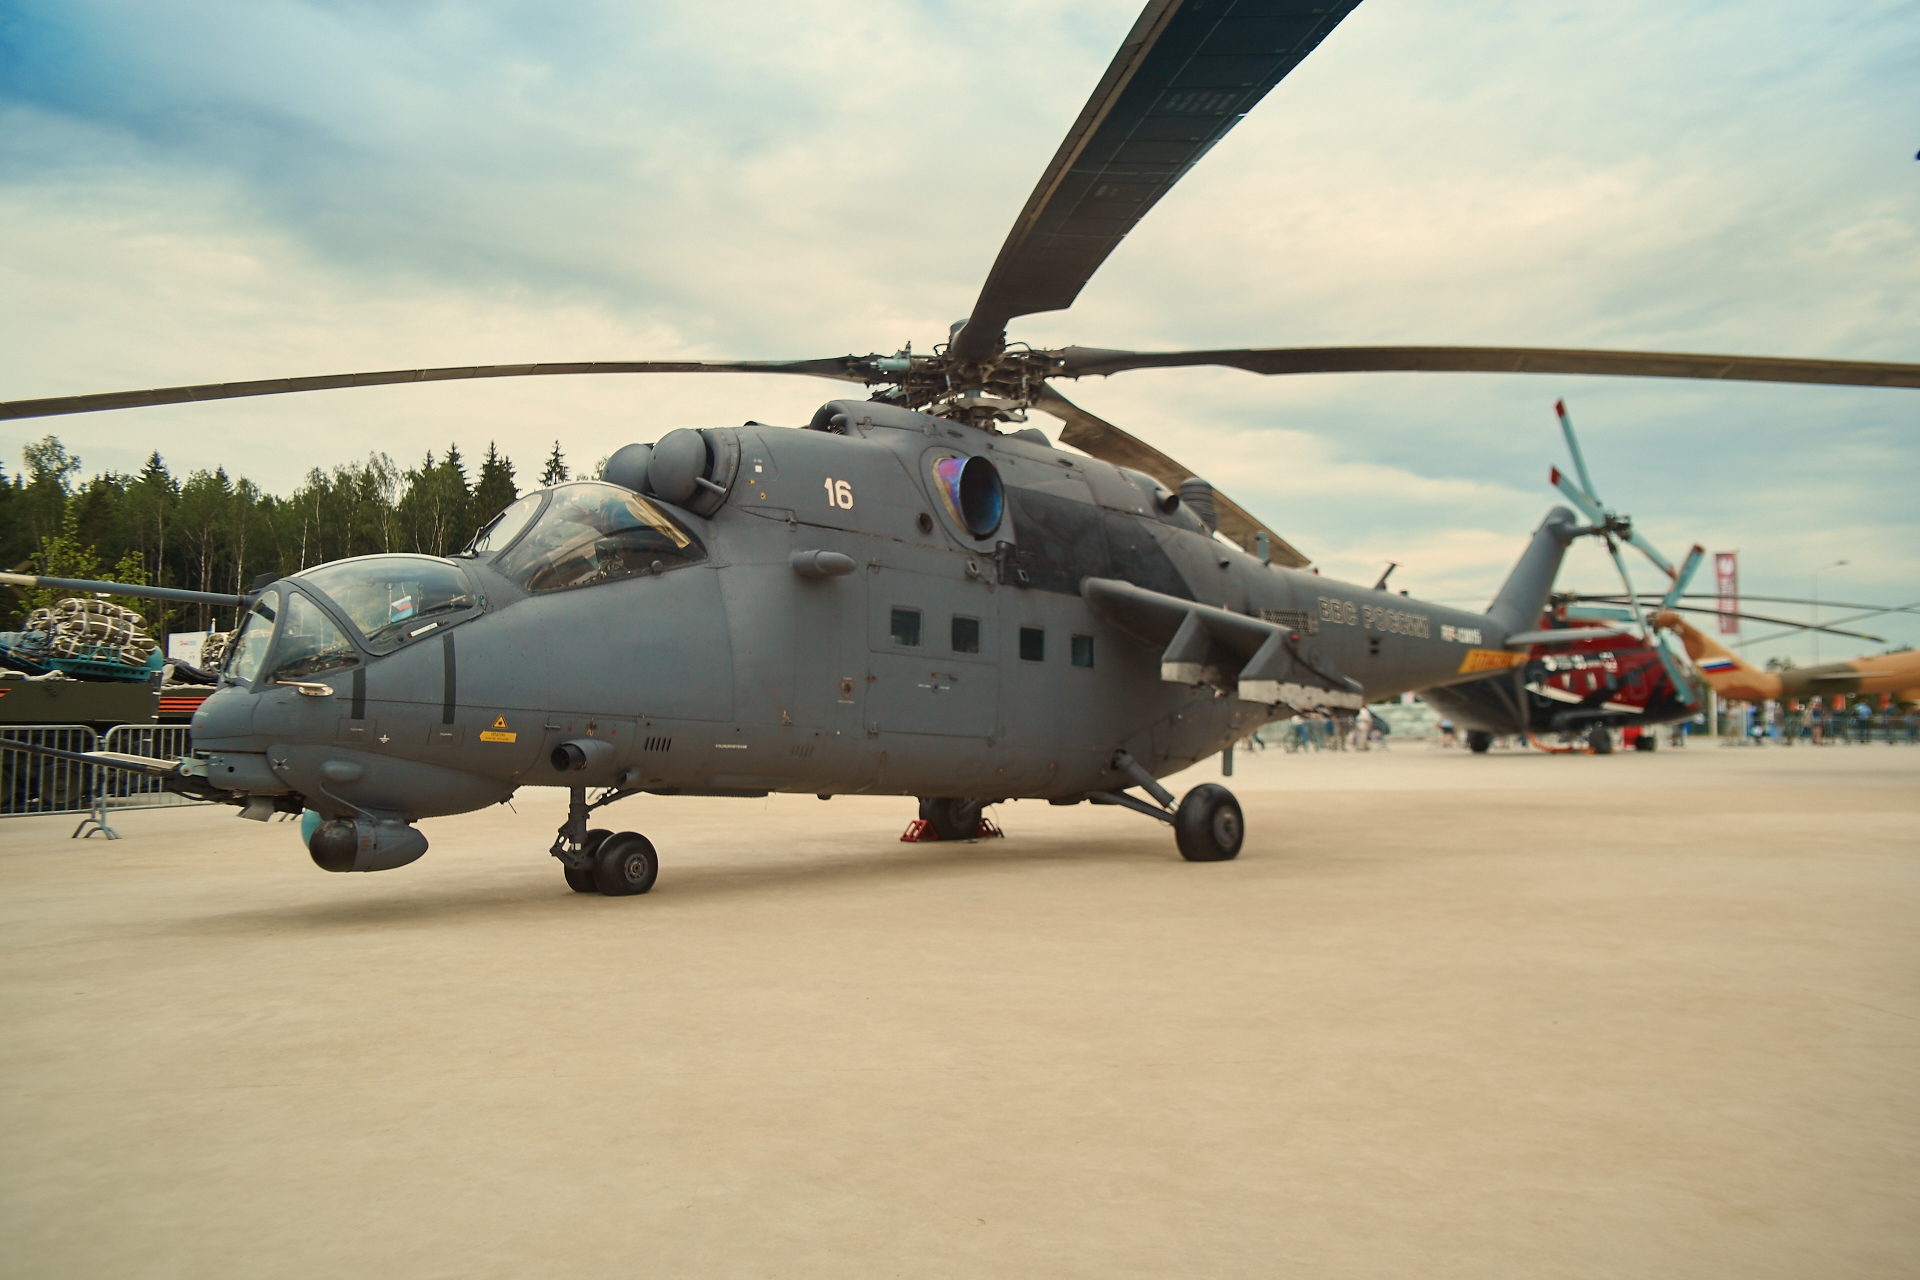 Russian Military Photos and Videos #2 - Page 37 0_a3859_3a2c49b_orig